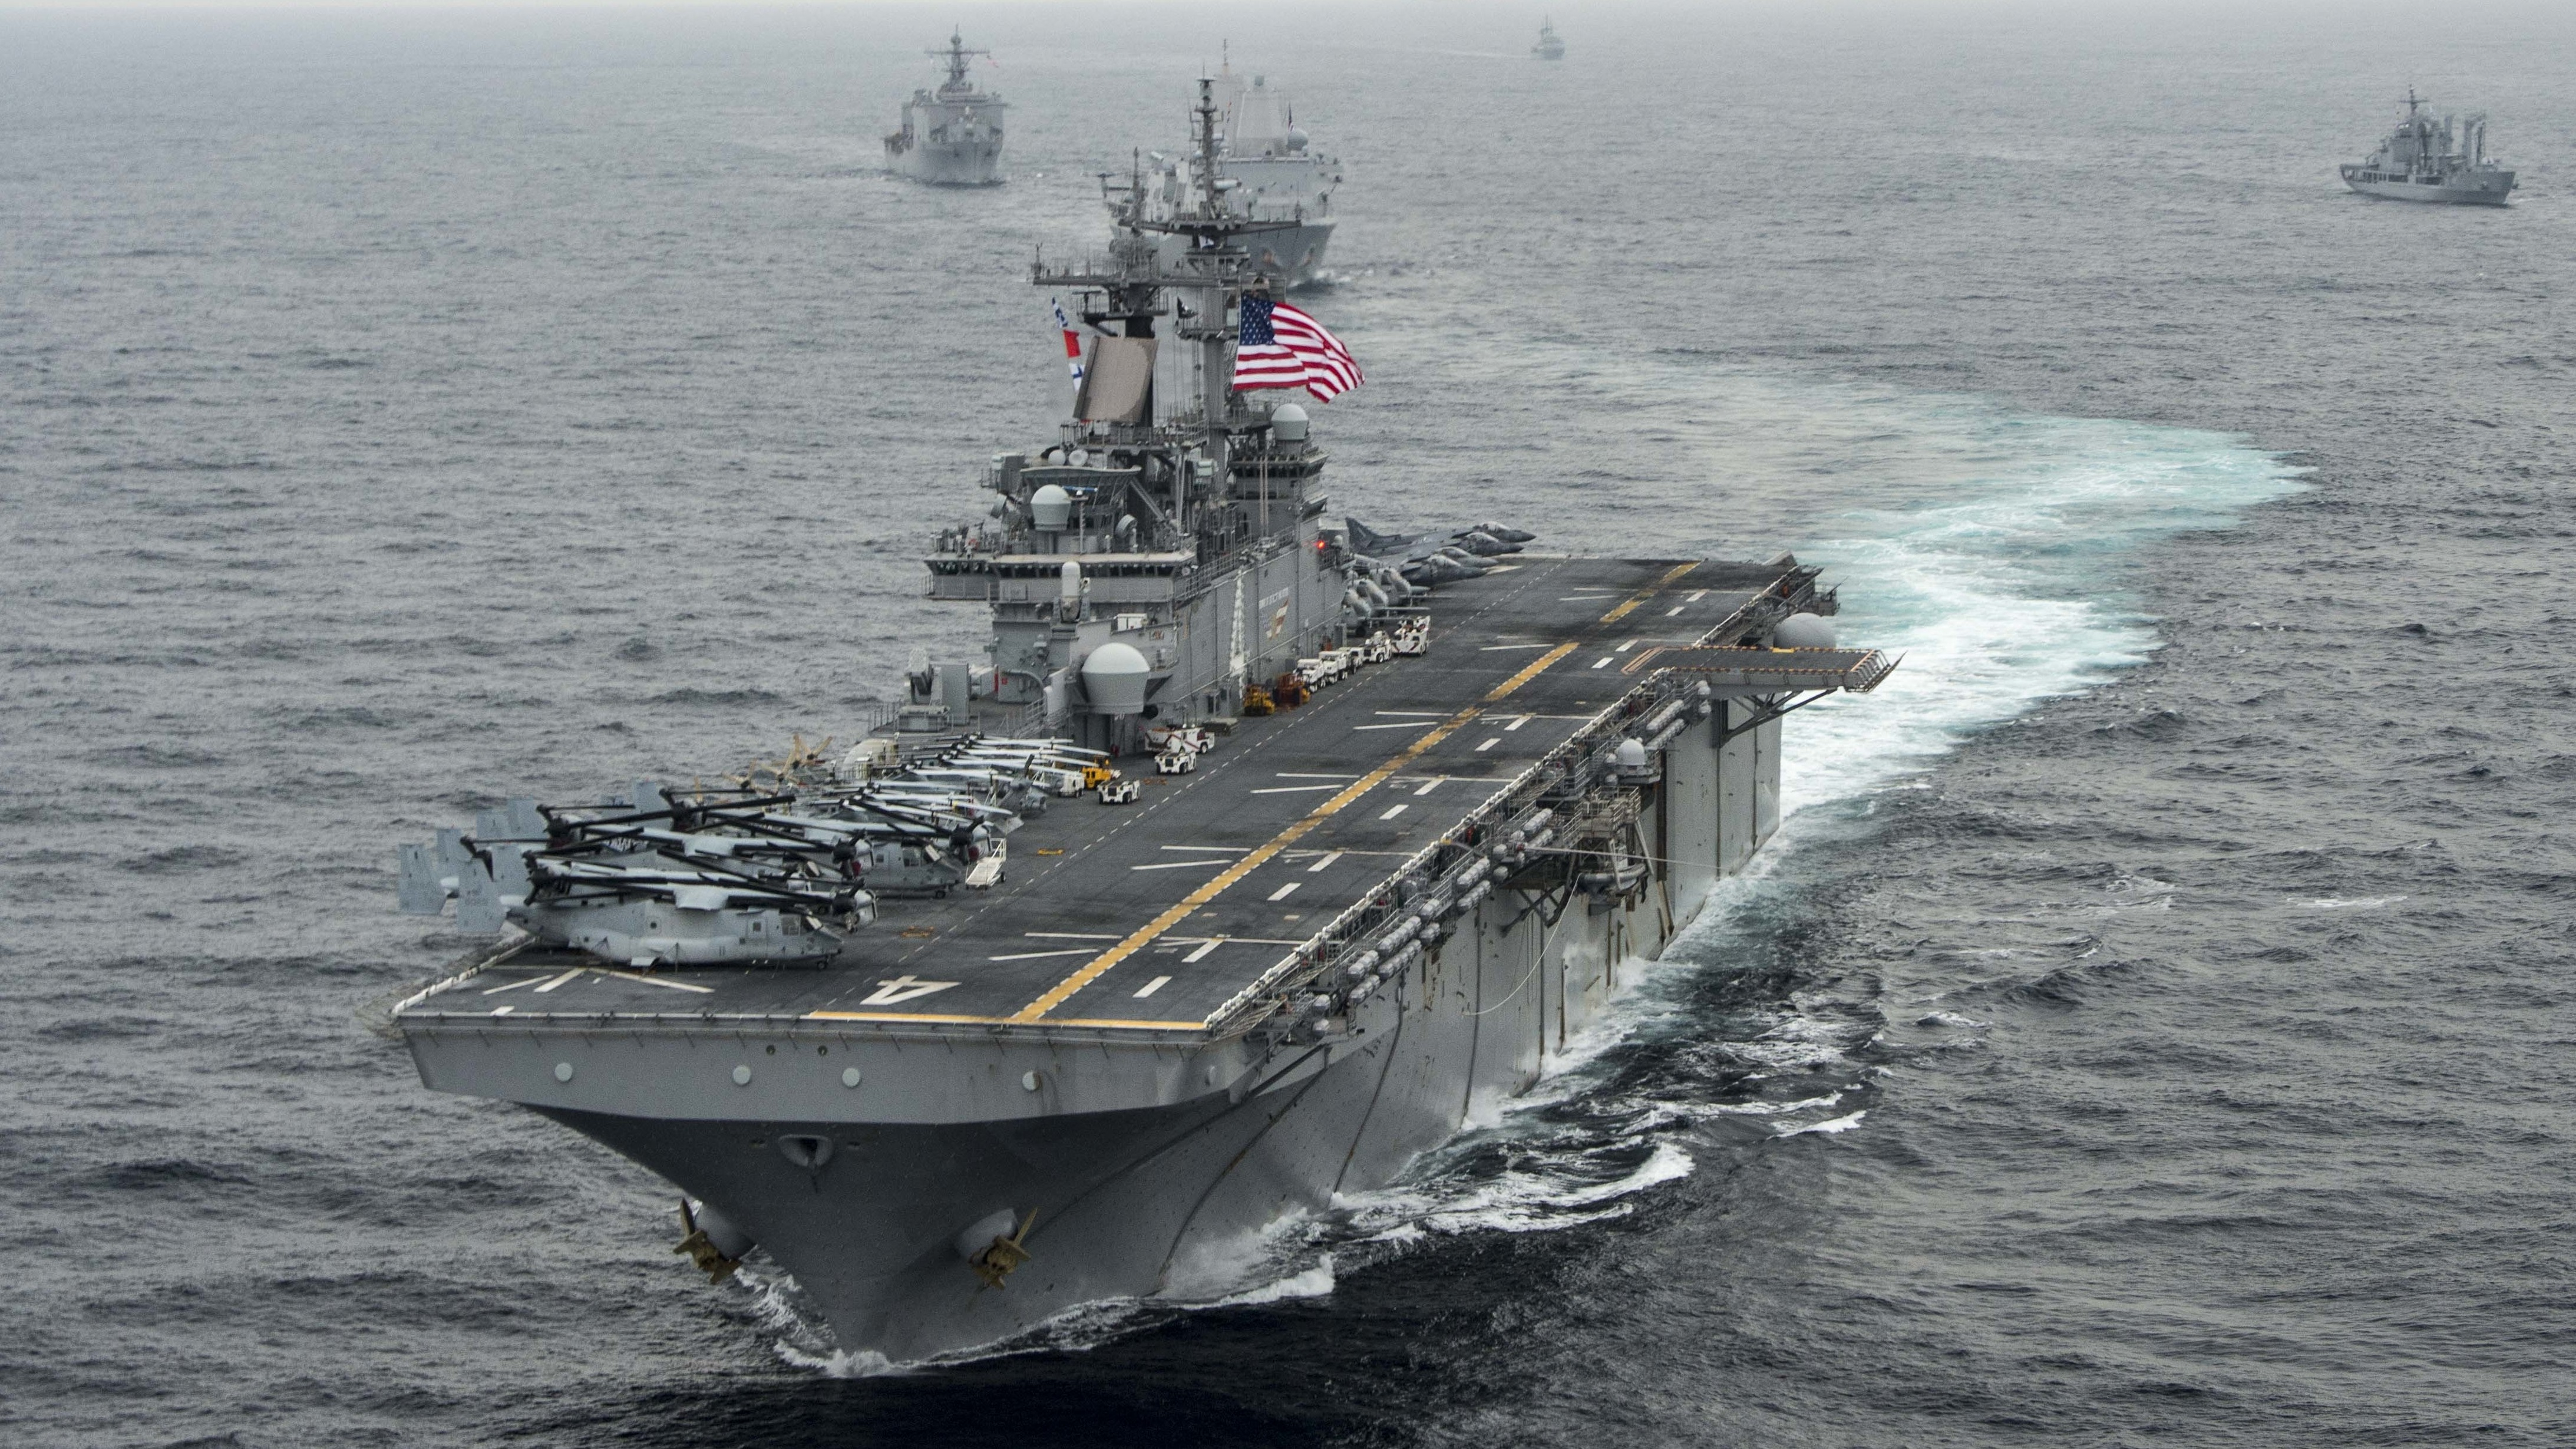 U.S. Warship 'May Have' Brought Down A 2nd Iranian Drone, General Says